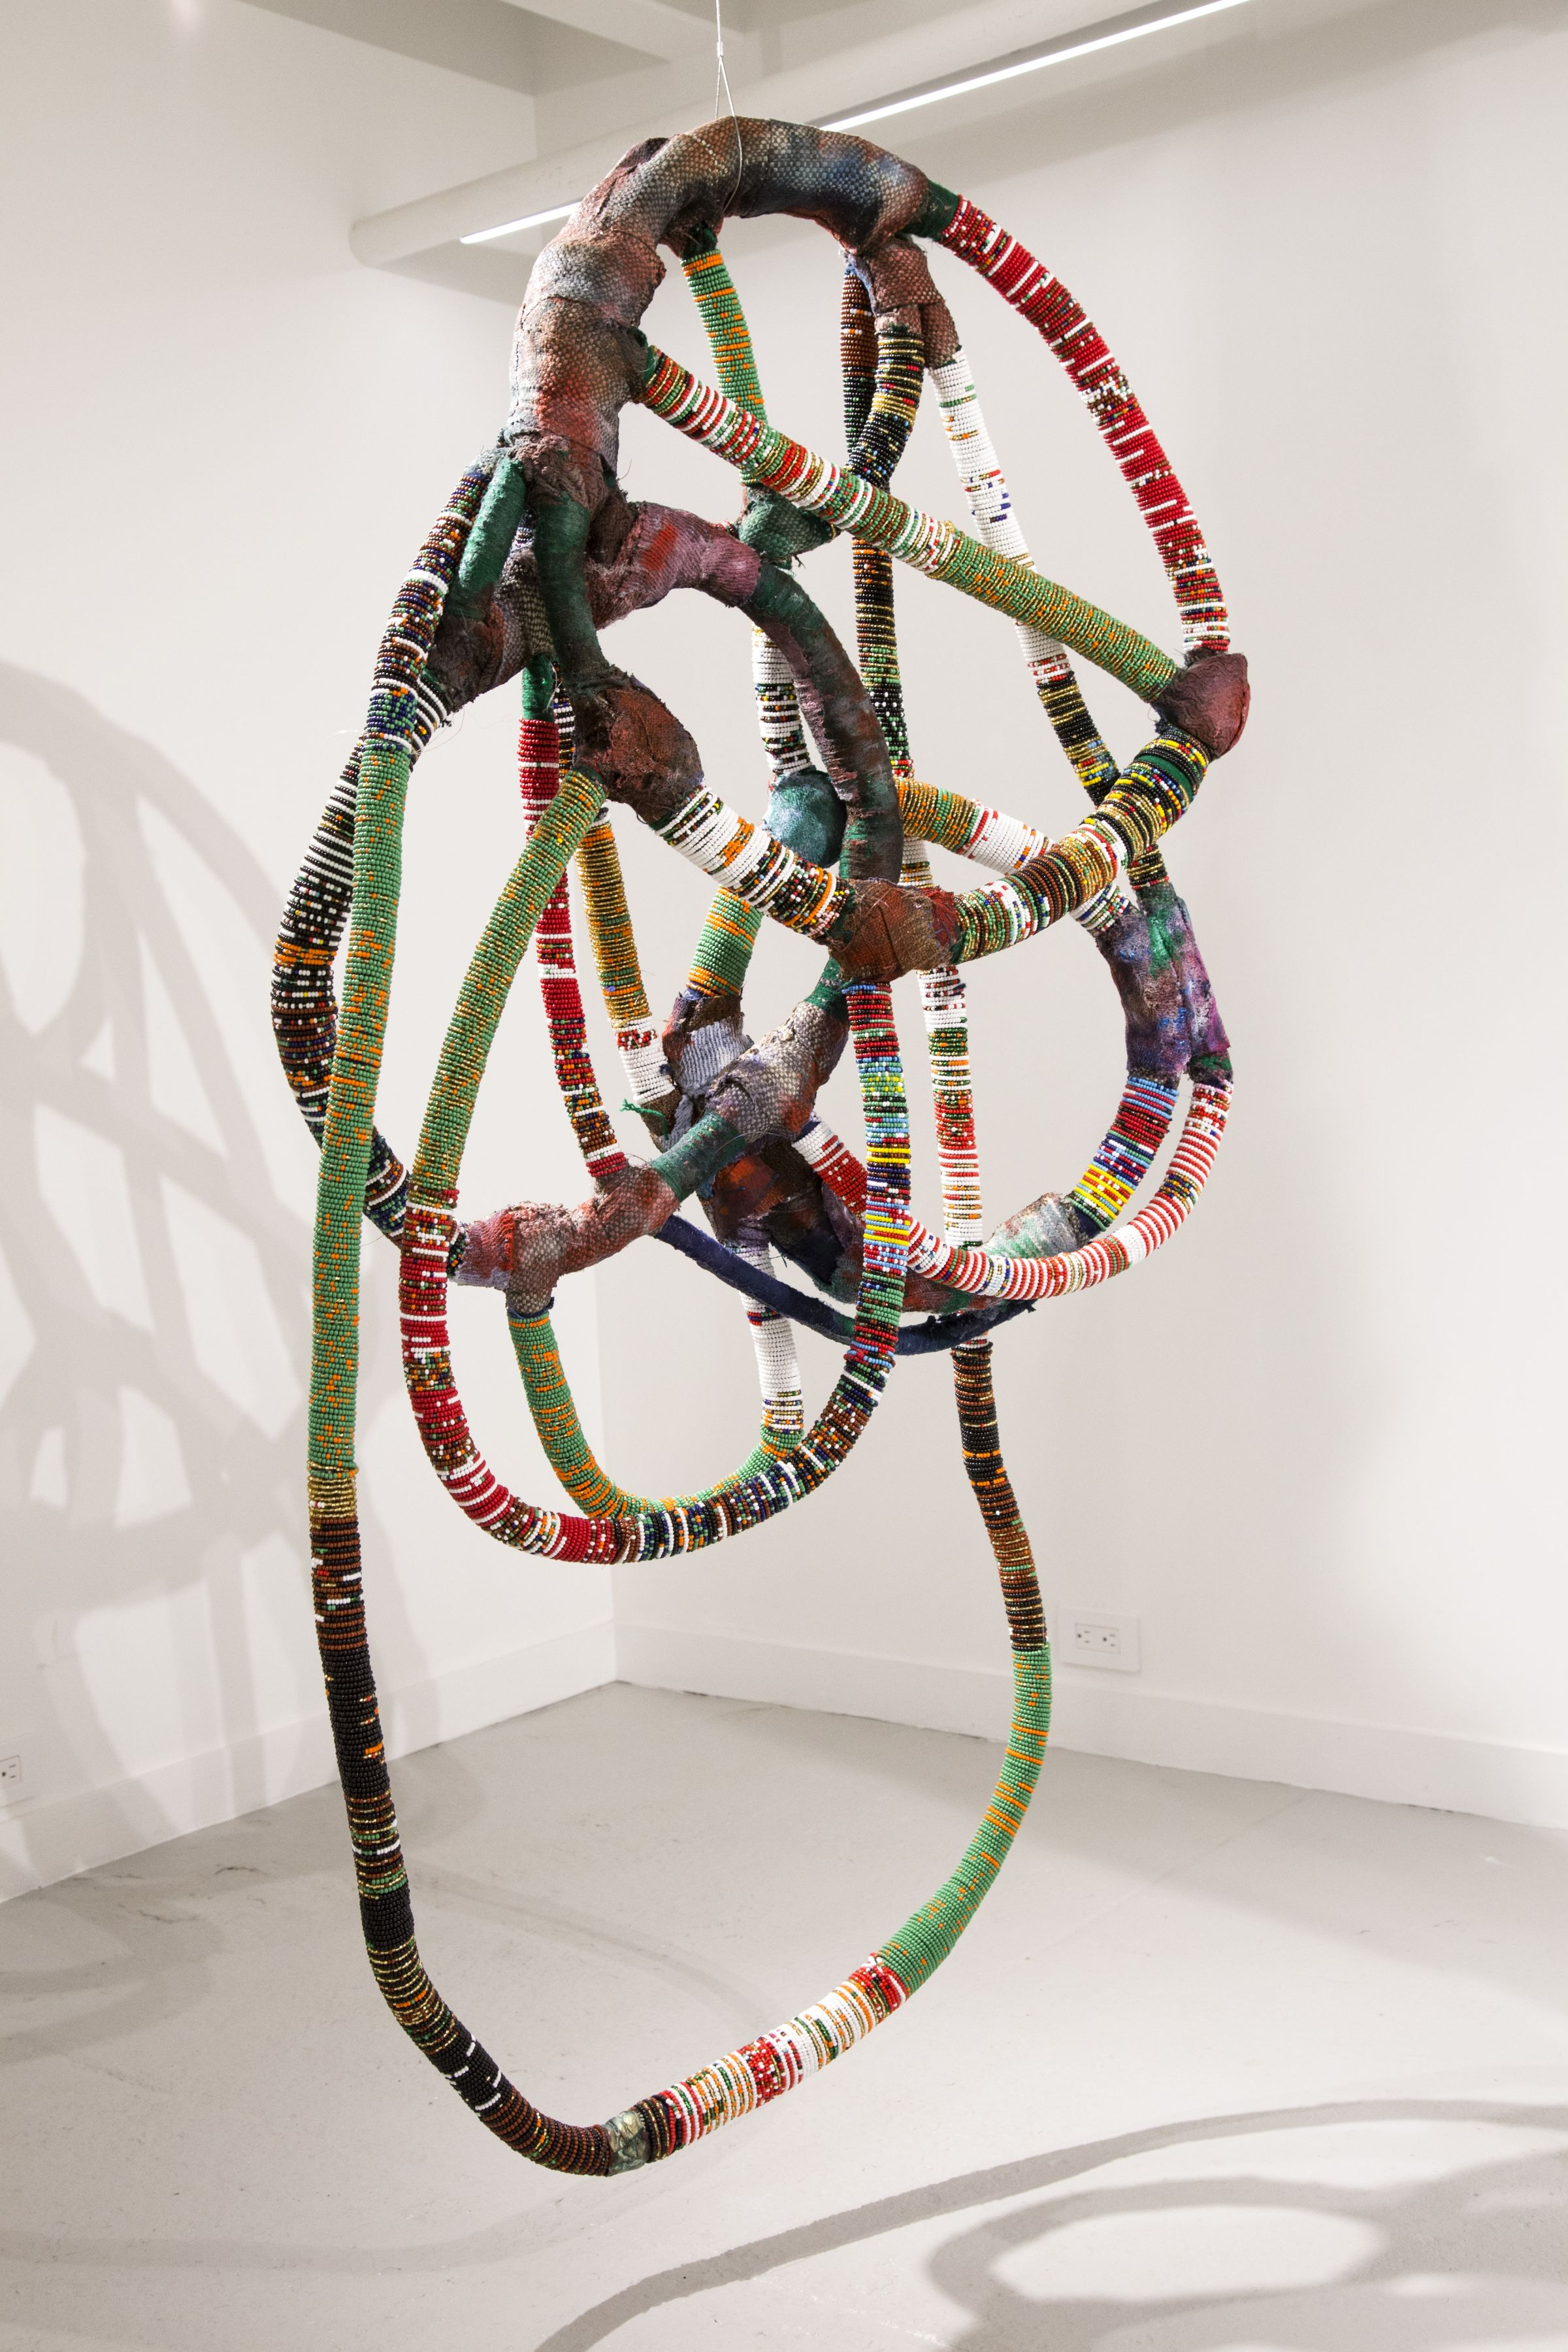 Leonardo Benzant  The Chameleon's Journey: Galveston, 2017  from the series Paraphemalia of the Urban Shaman M:5  clothes/fabric, string, monofilament, glass beads, gel medium, acrylic, vija (Ashiote), coffee grinds, powdered charcoal, glitter and miscellaneous  height: 70 inches